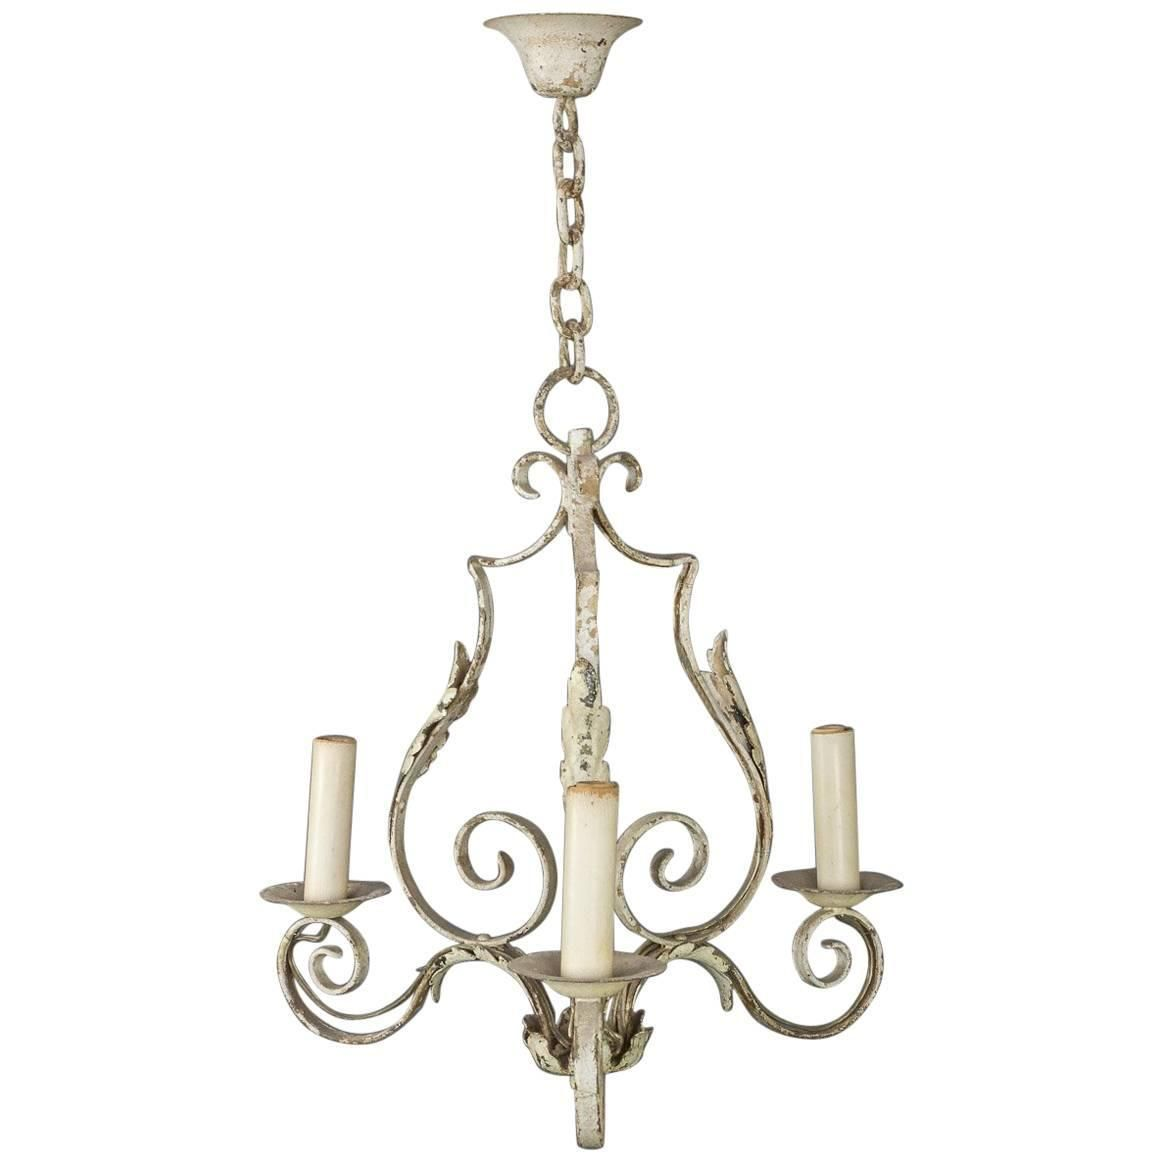 Small French Wrought Iron Chandelier Iron Chandeliers Wrought